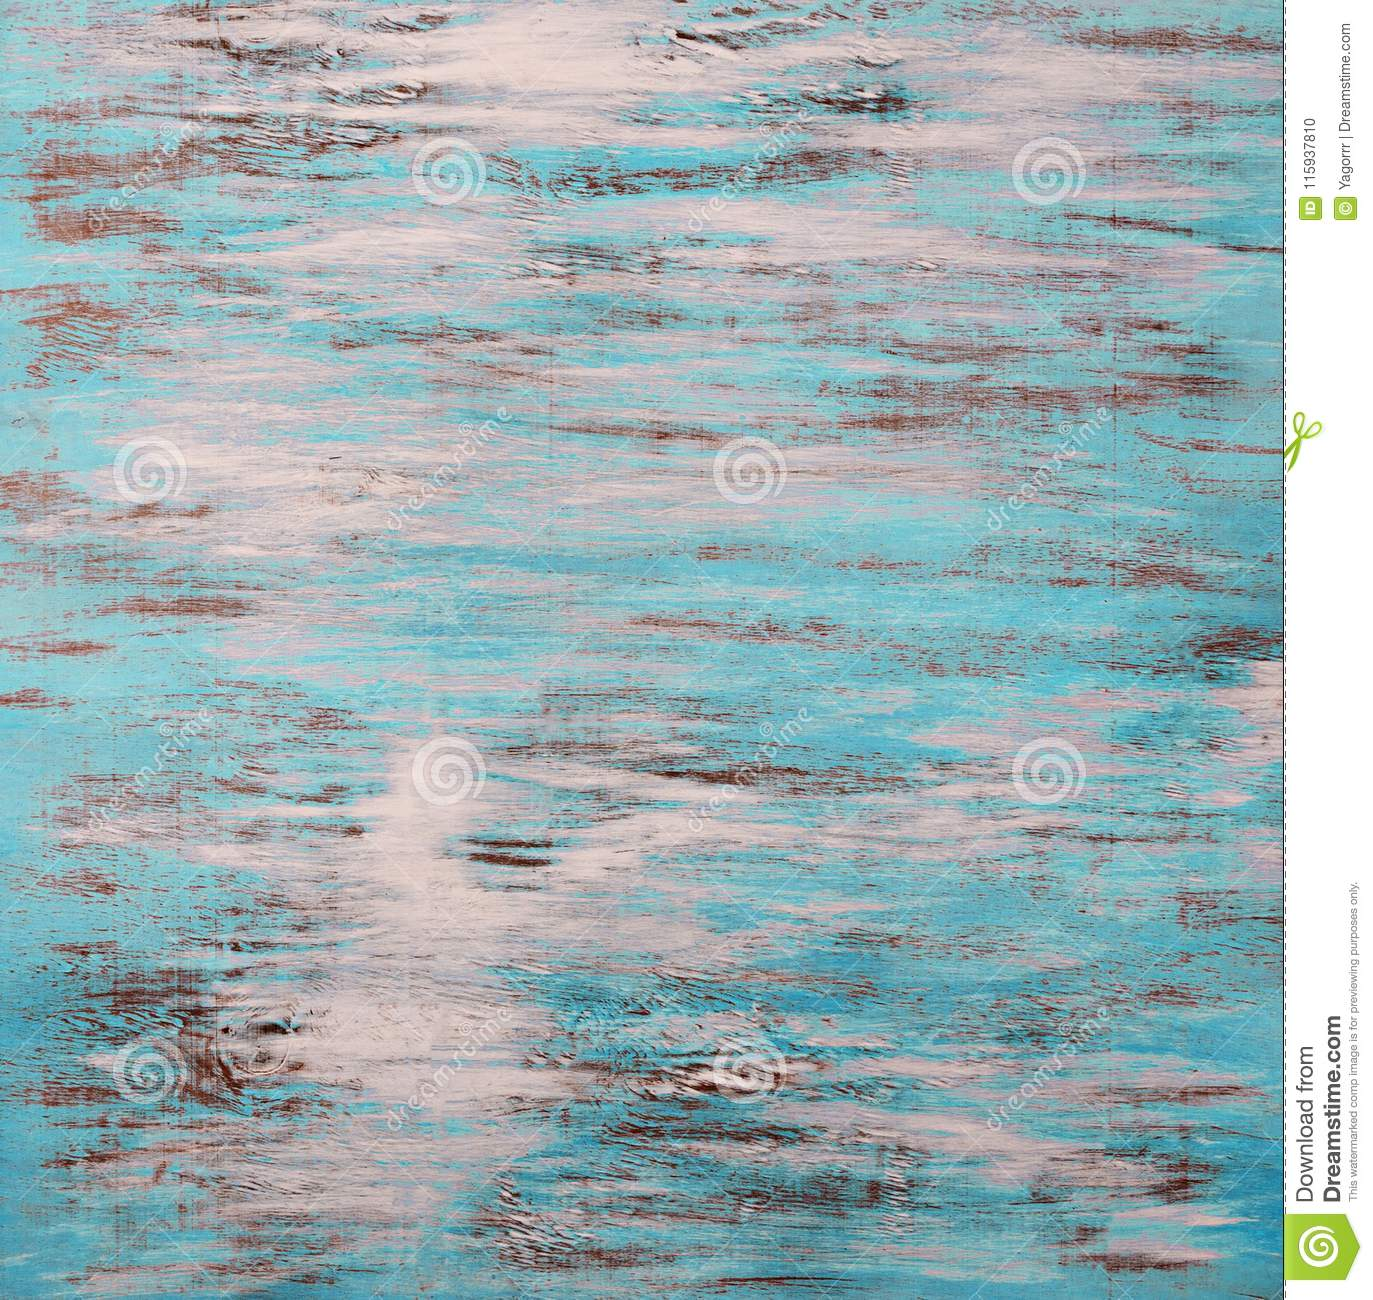 Background of colored abstract turquoise-white with wood texture